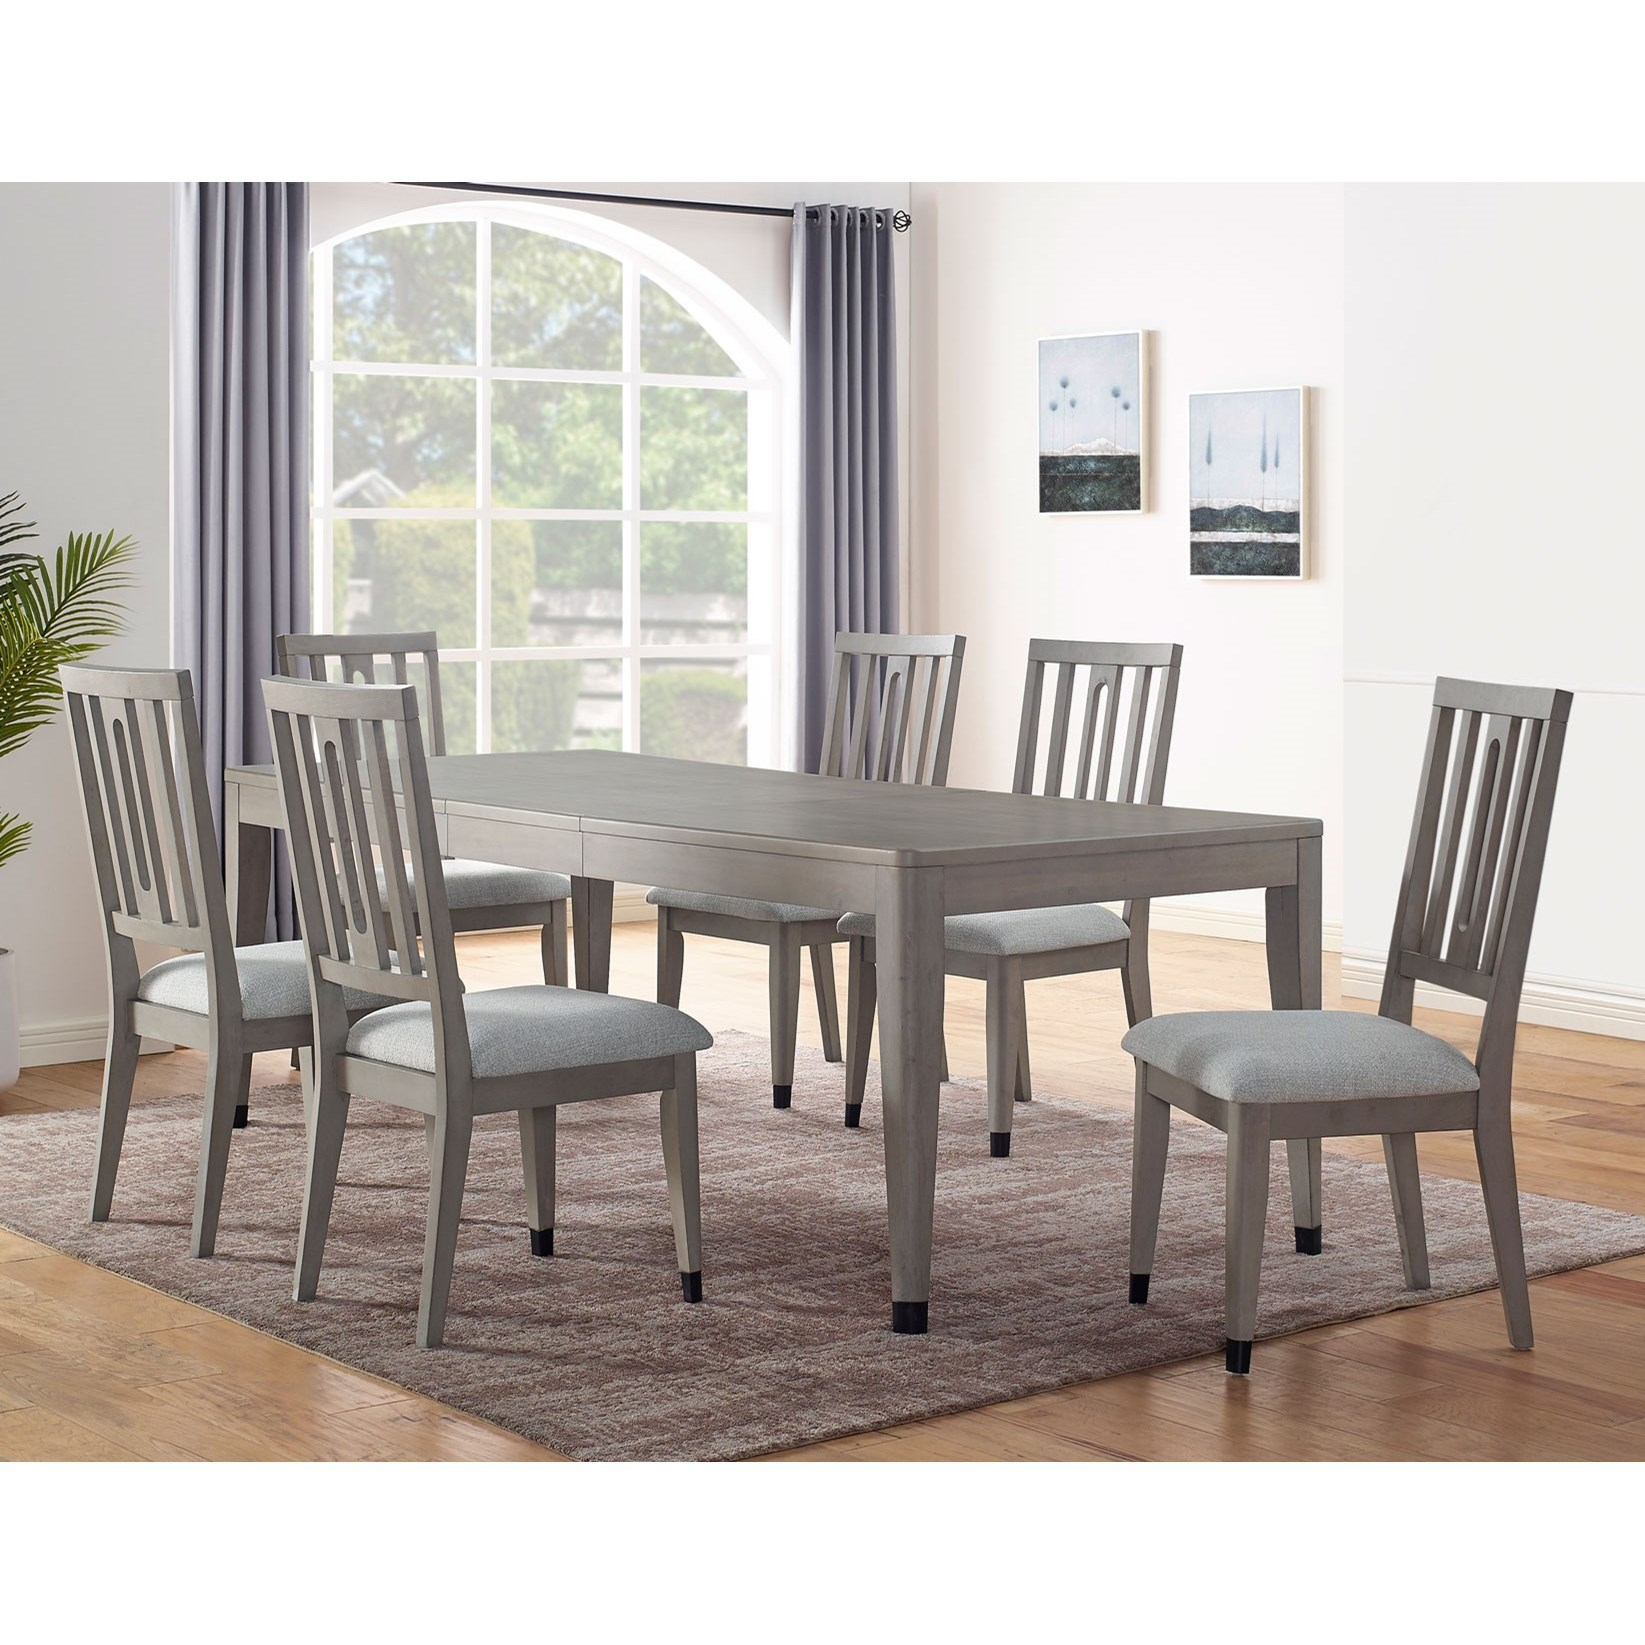 Fordham 7-Piece Dining Table Set by Steve Silver at Walker's Furniture